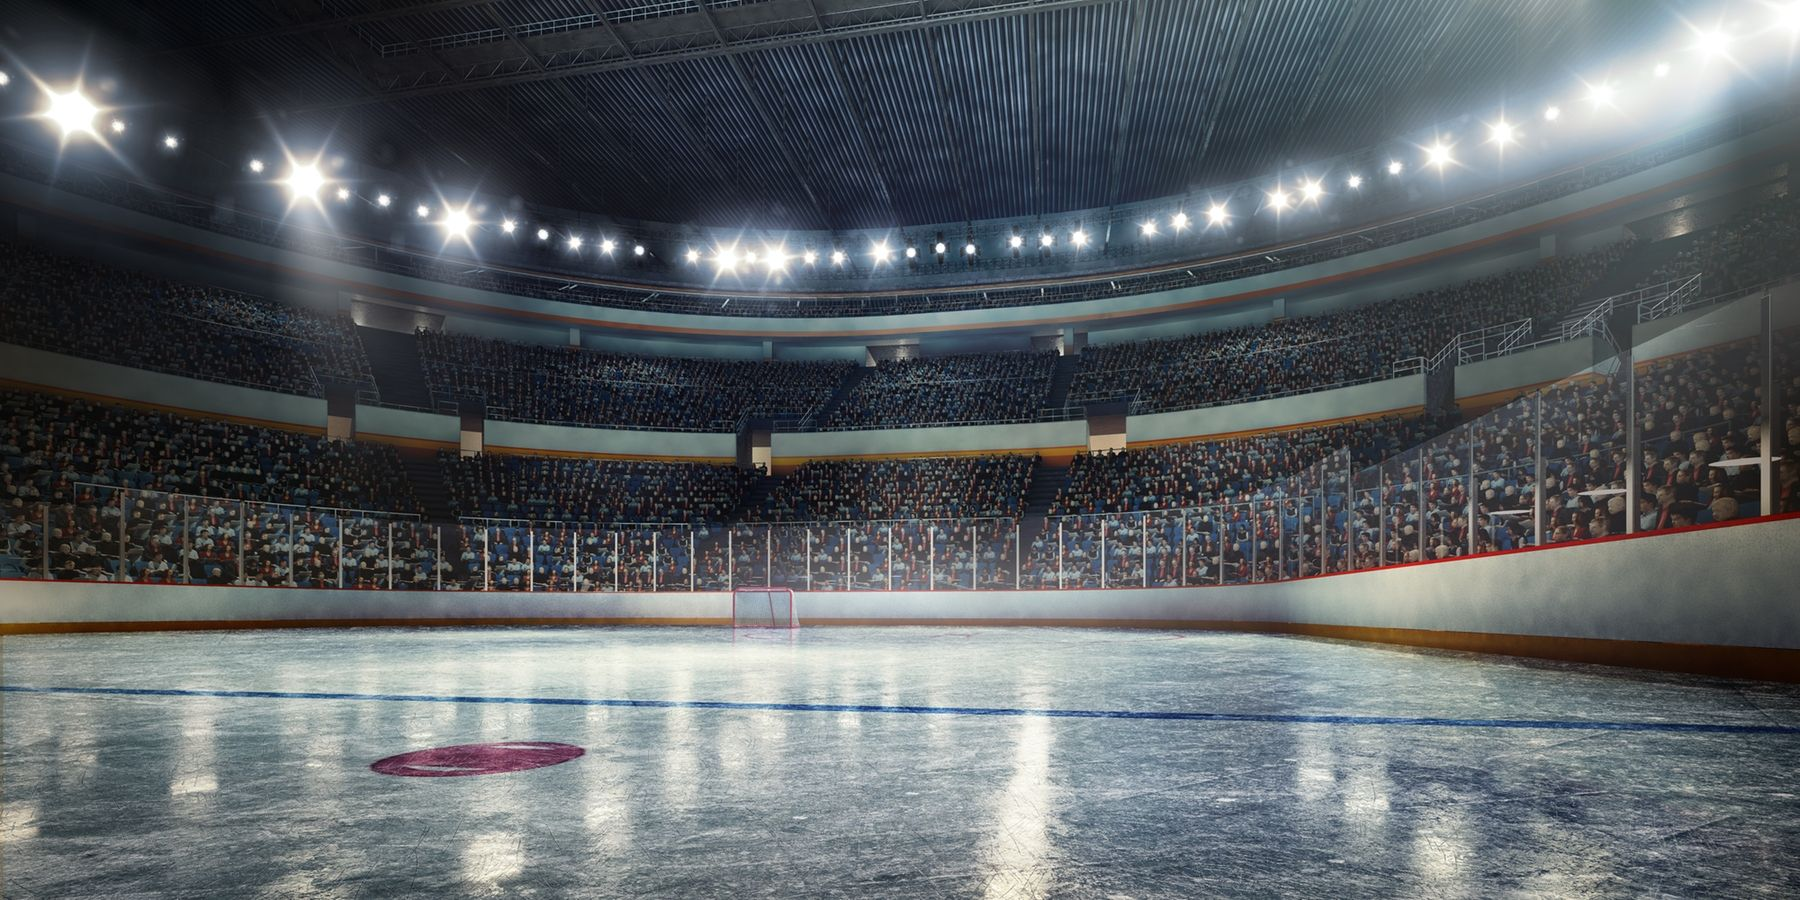 Order Hockey Arena Wall Mural From Happywall Printed On Demand To Fit Perfect On Your Wall Choose From Thousands Of Designs Free Shipping With Dhl Wall Crear